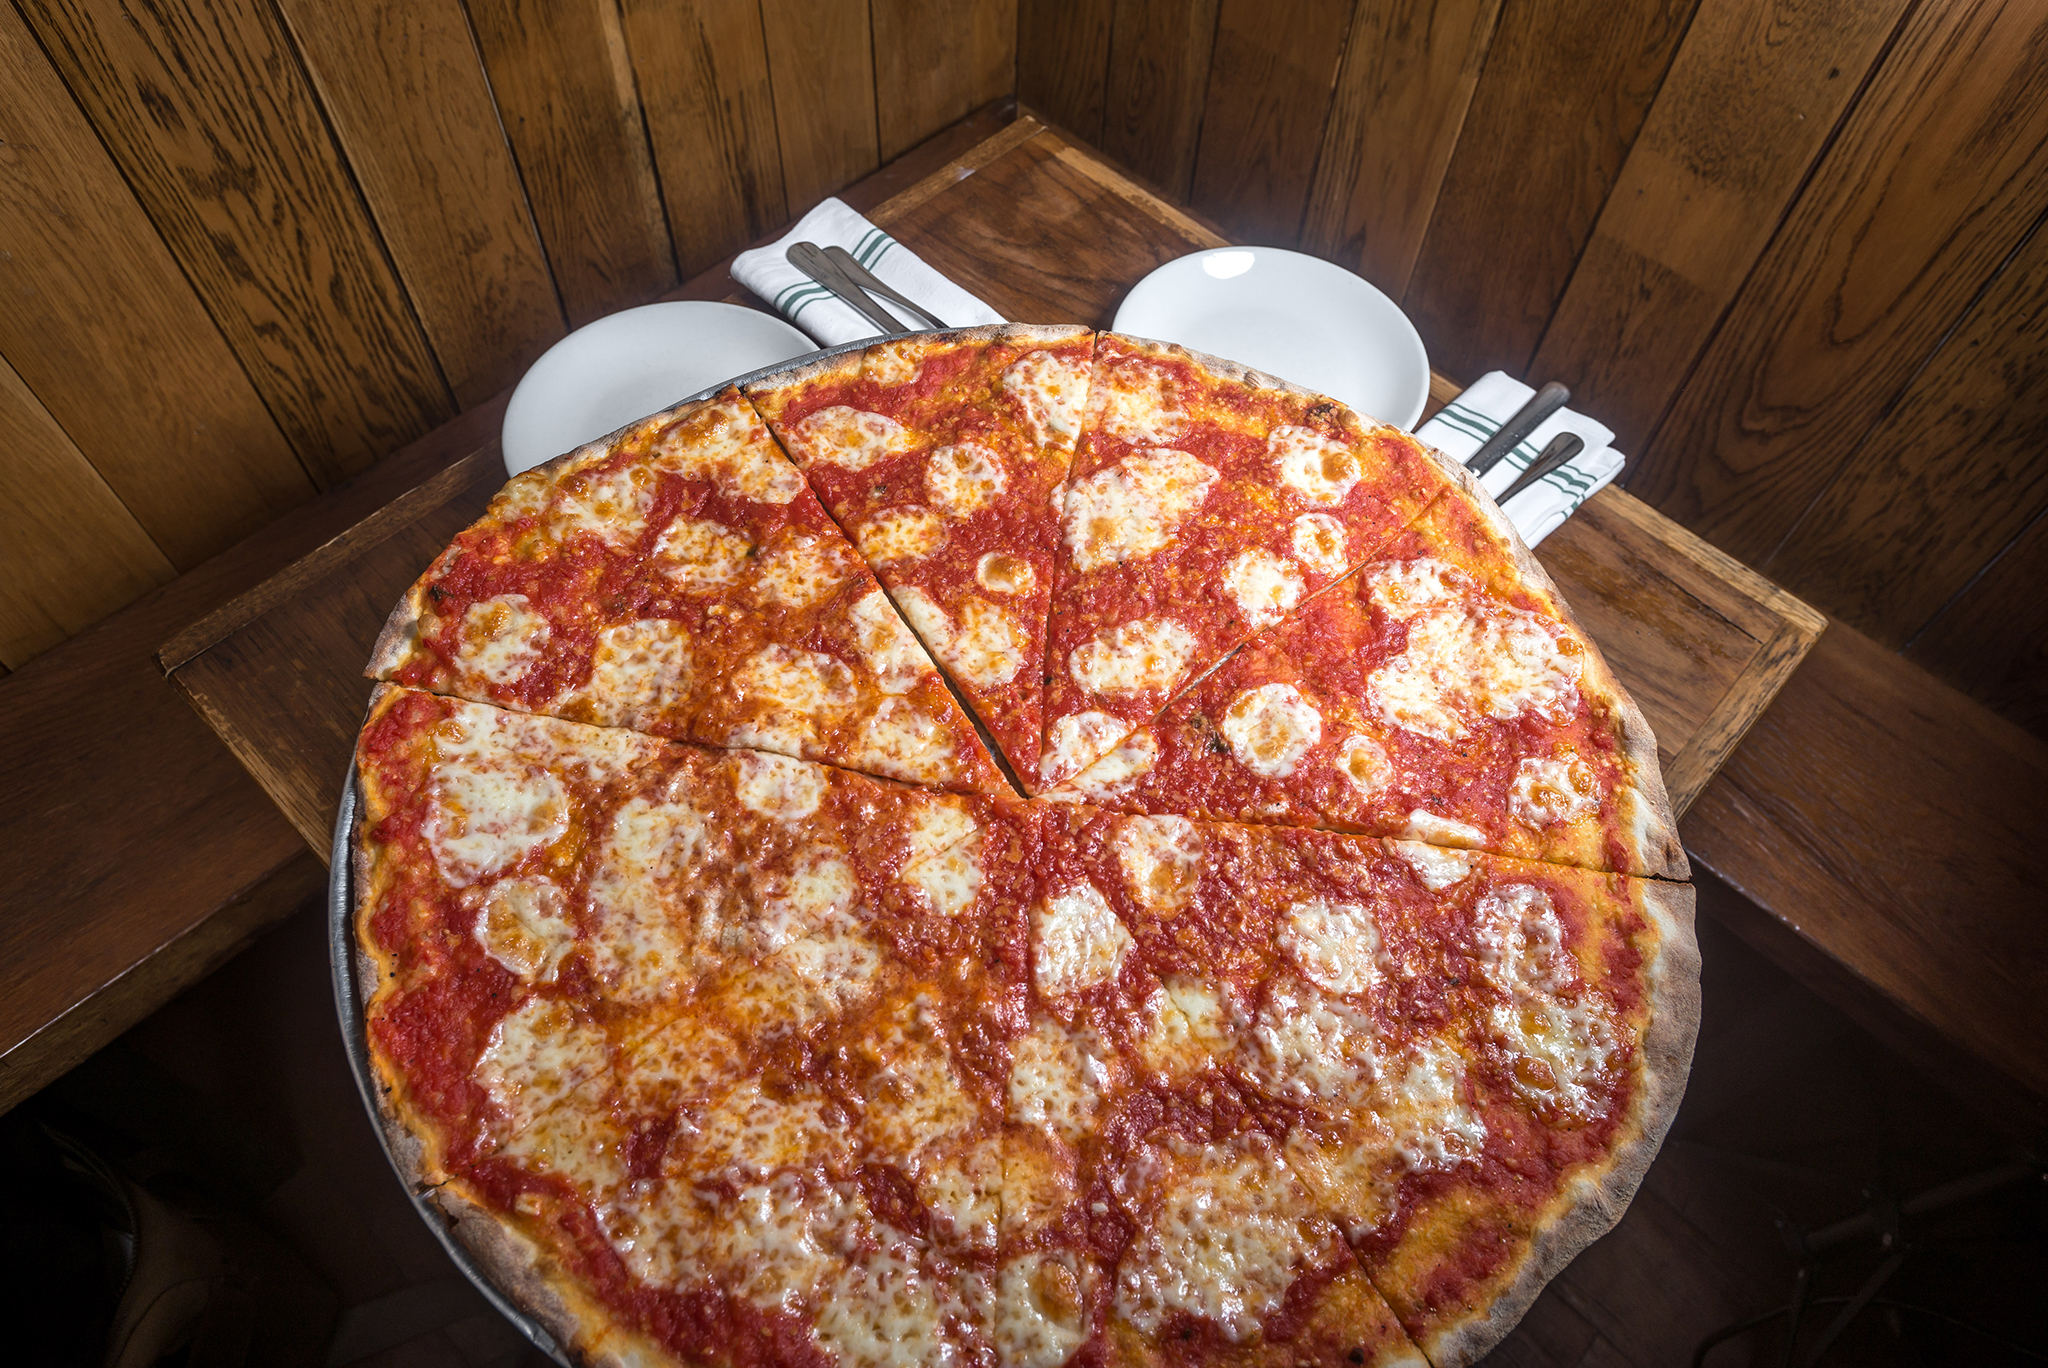 How many of the 25 best New York pizzas have you eaten?